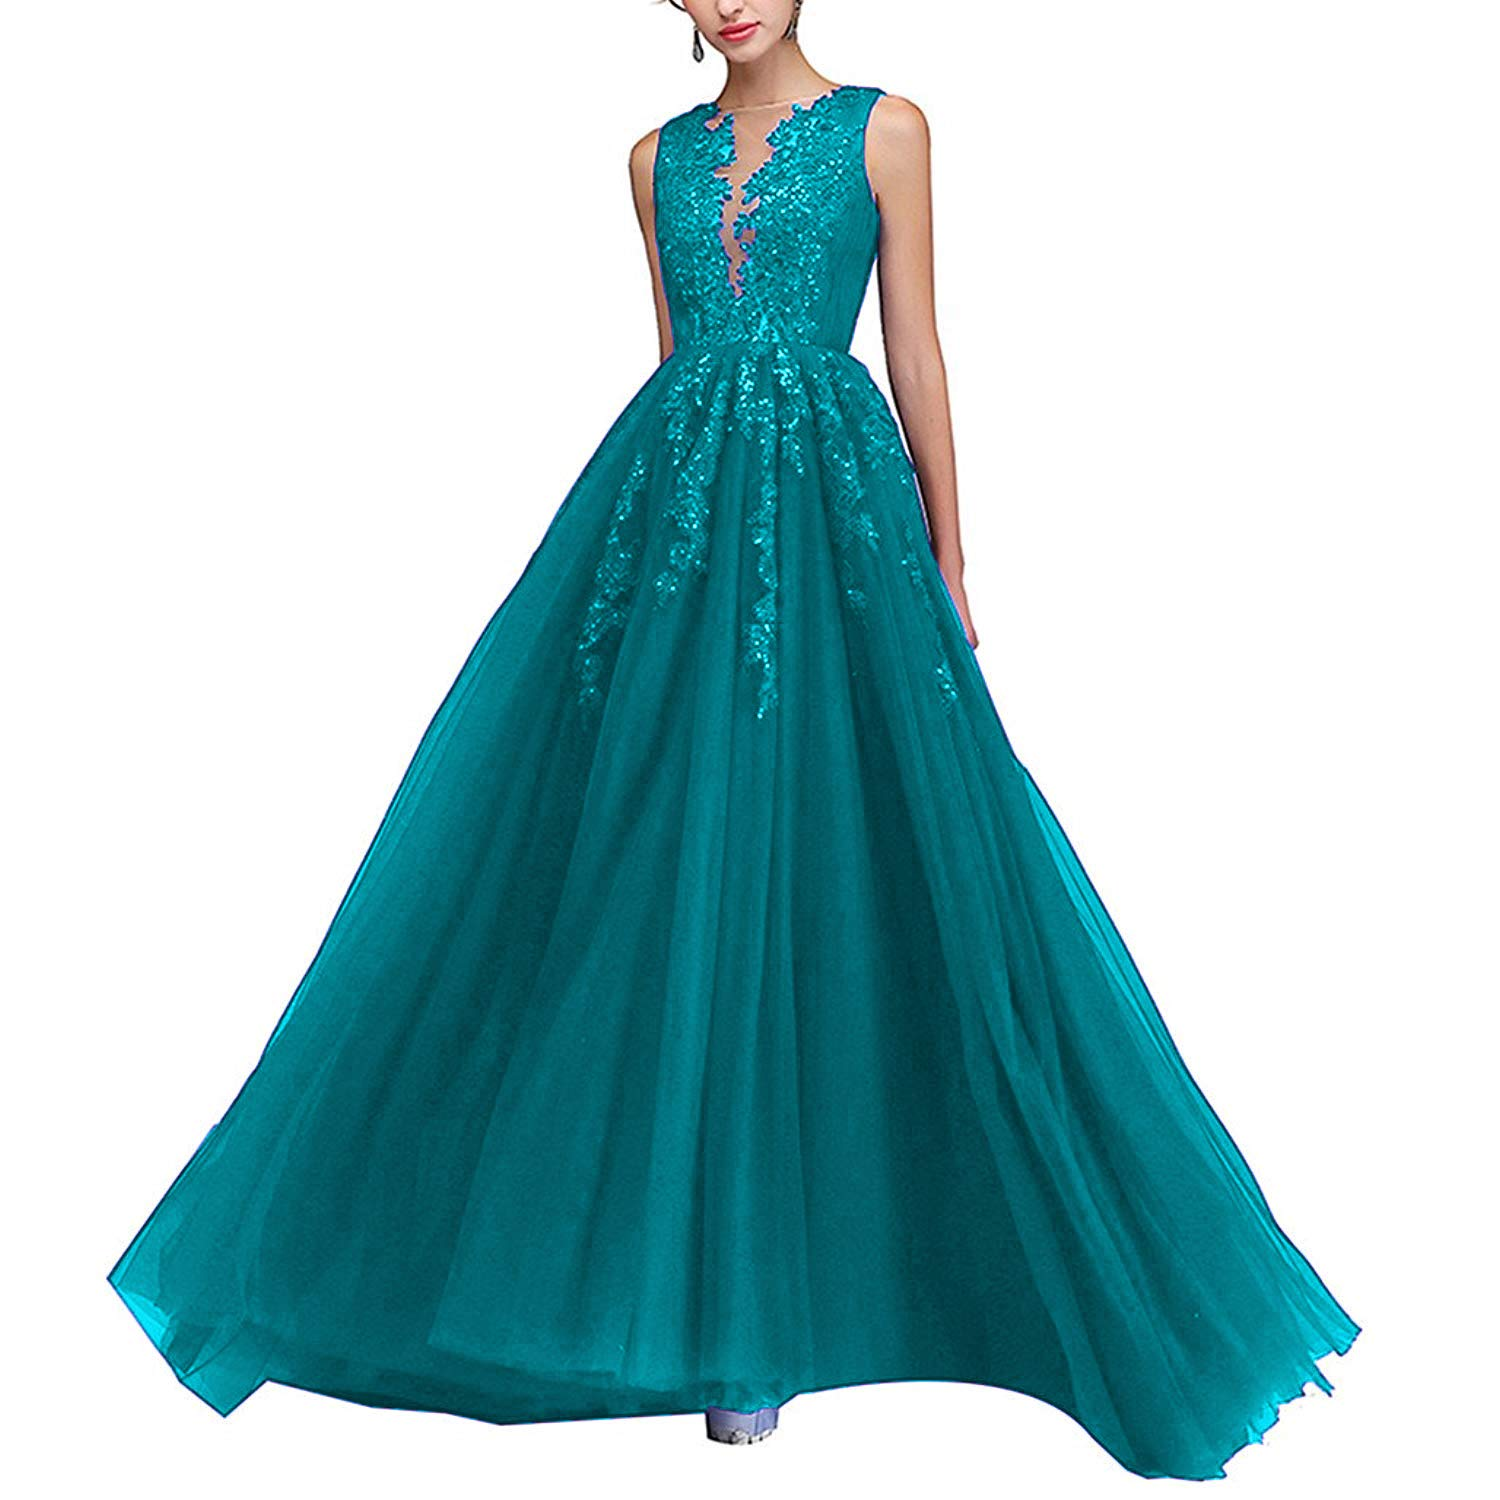 Turquoise PearlBridal Illusion Neck Lace Appliques Long Prom Dresses Beaded Tulle Evening Dress for Women Side Slit